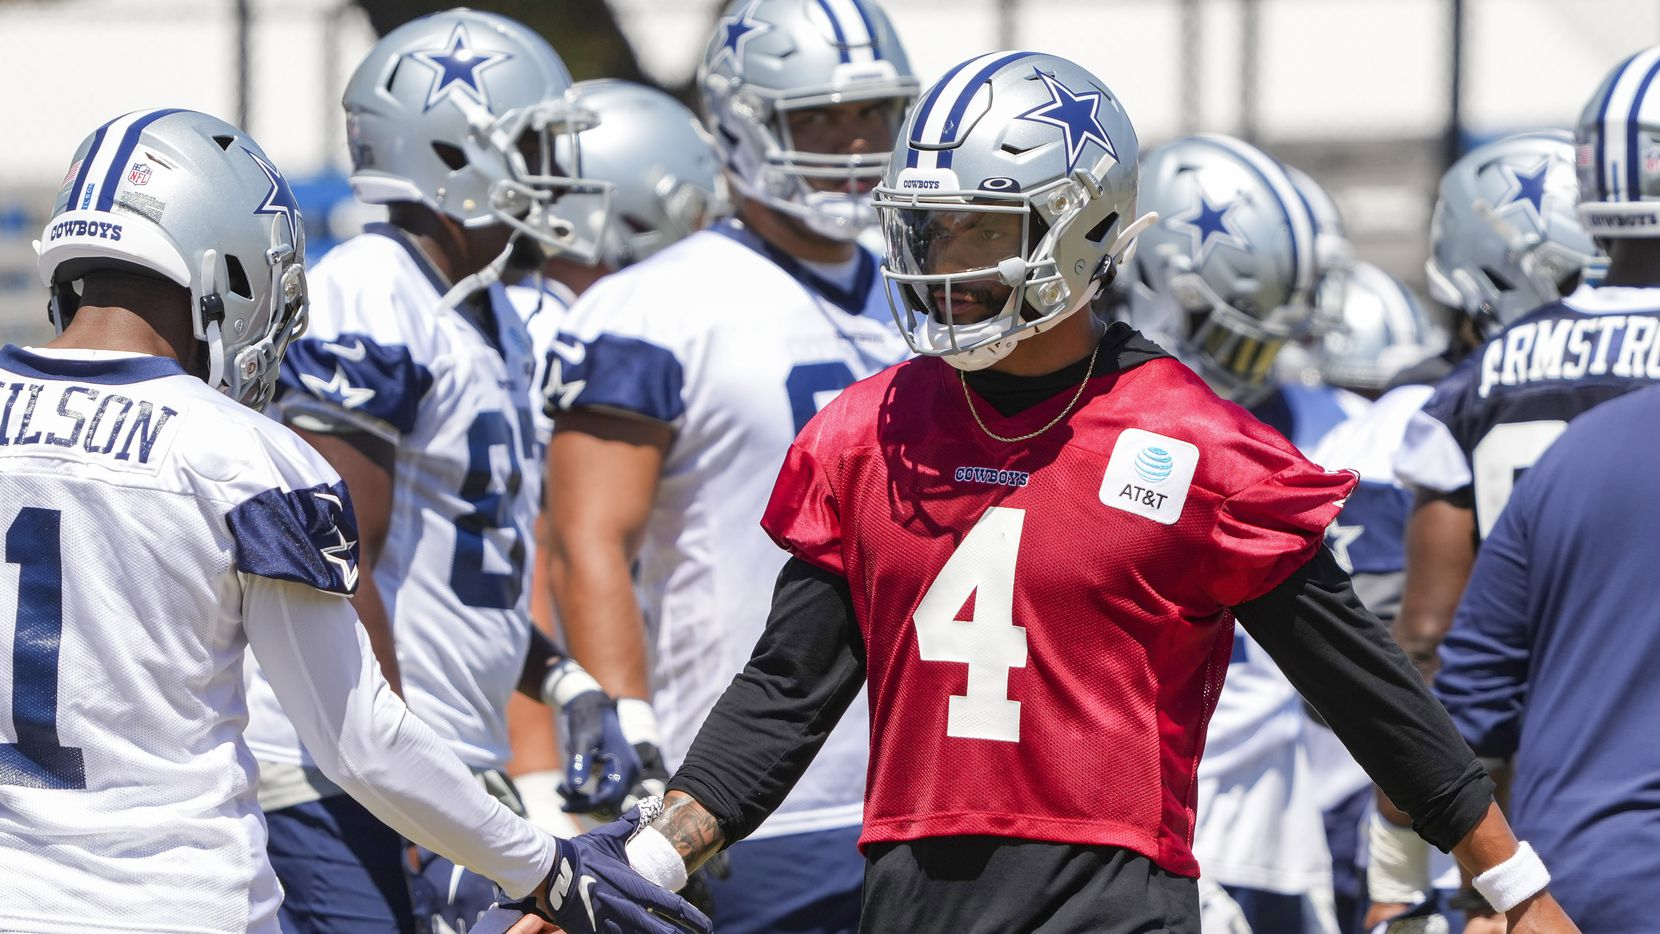 Dallas Cowboys quarterback Dak Prescott (4) slaps hands with wide receiver Cedrick Wilson (1) during a practice at training camp on Tuesday, Aug. 3, 2021, in Oxnard, Calif.